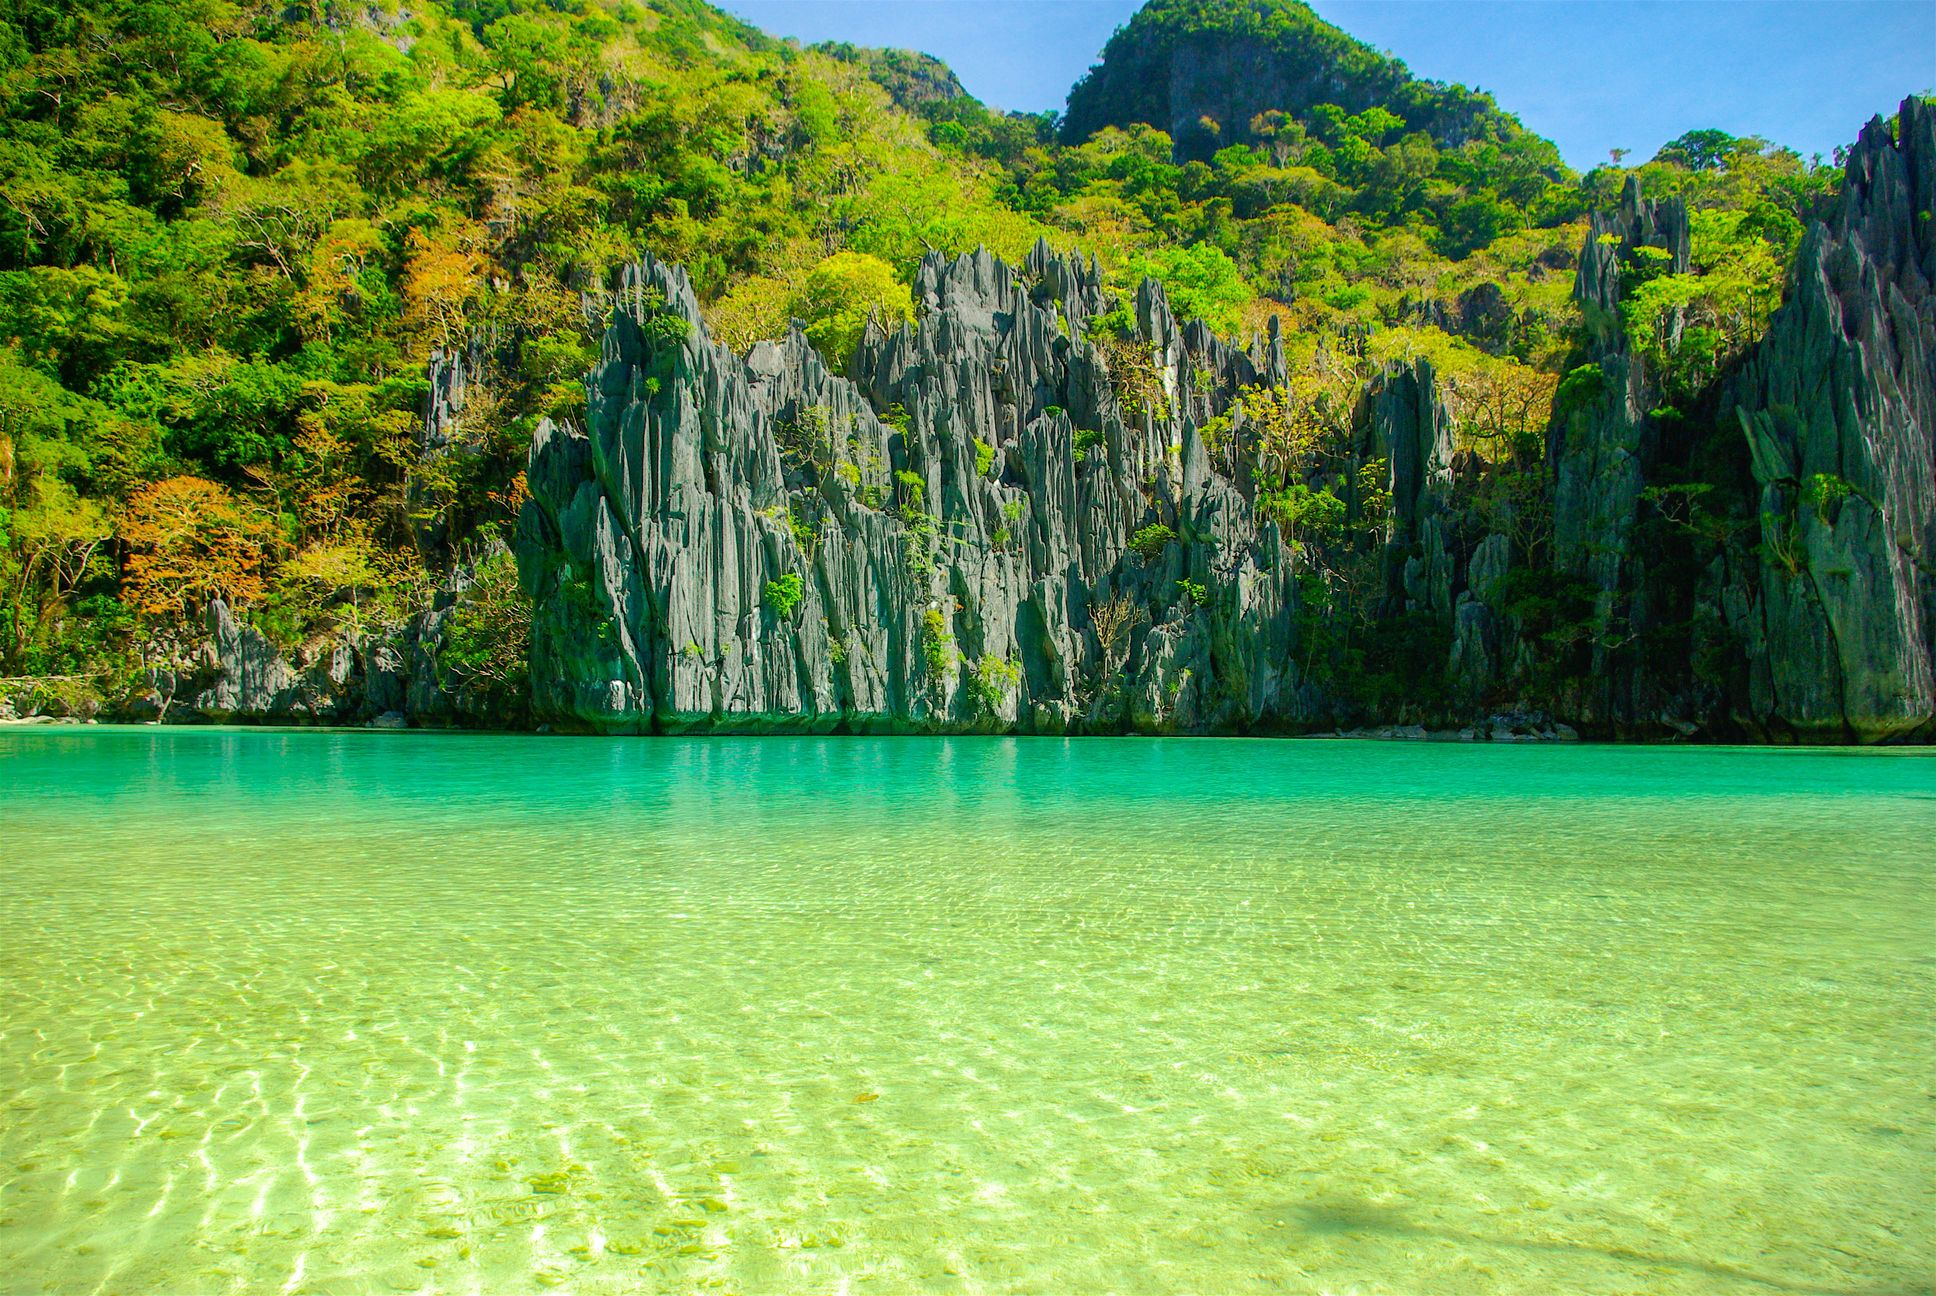 Limestone cliffs overhung with vegetation rise above turquoise waters in El Nido, Palawan, Philippines